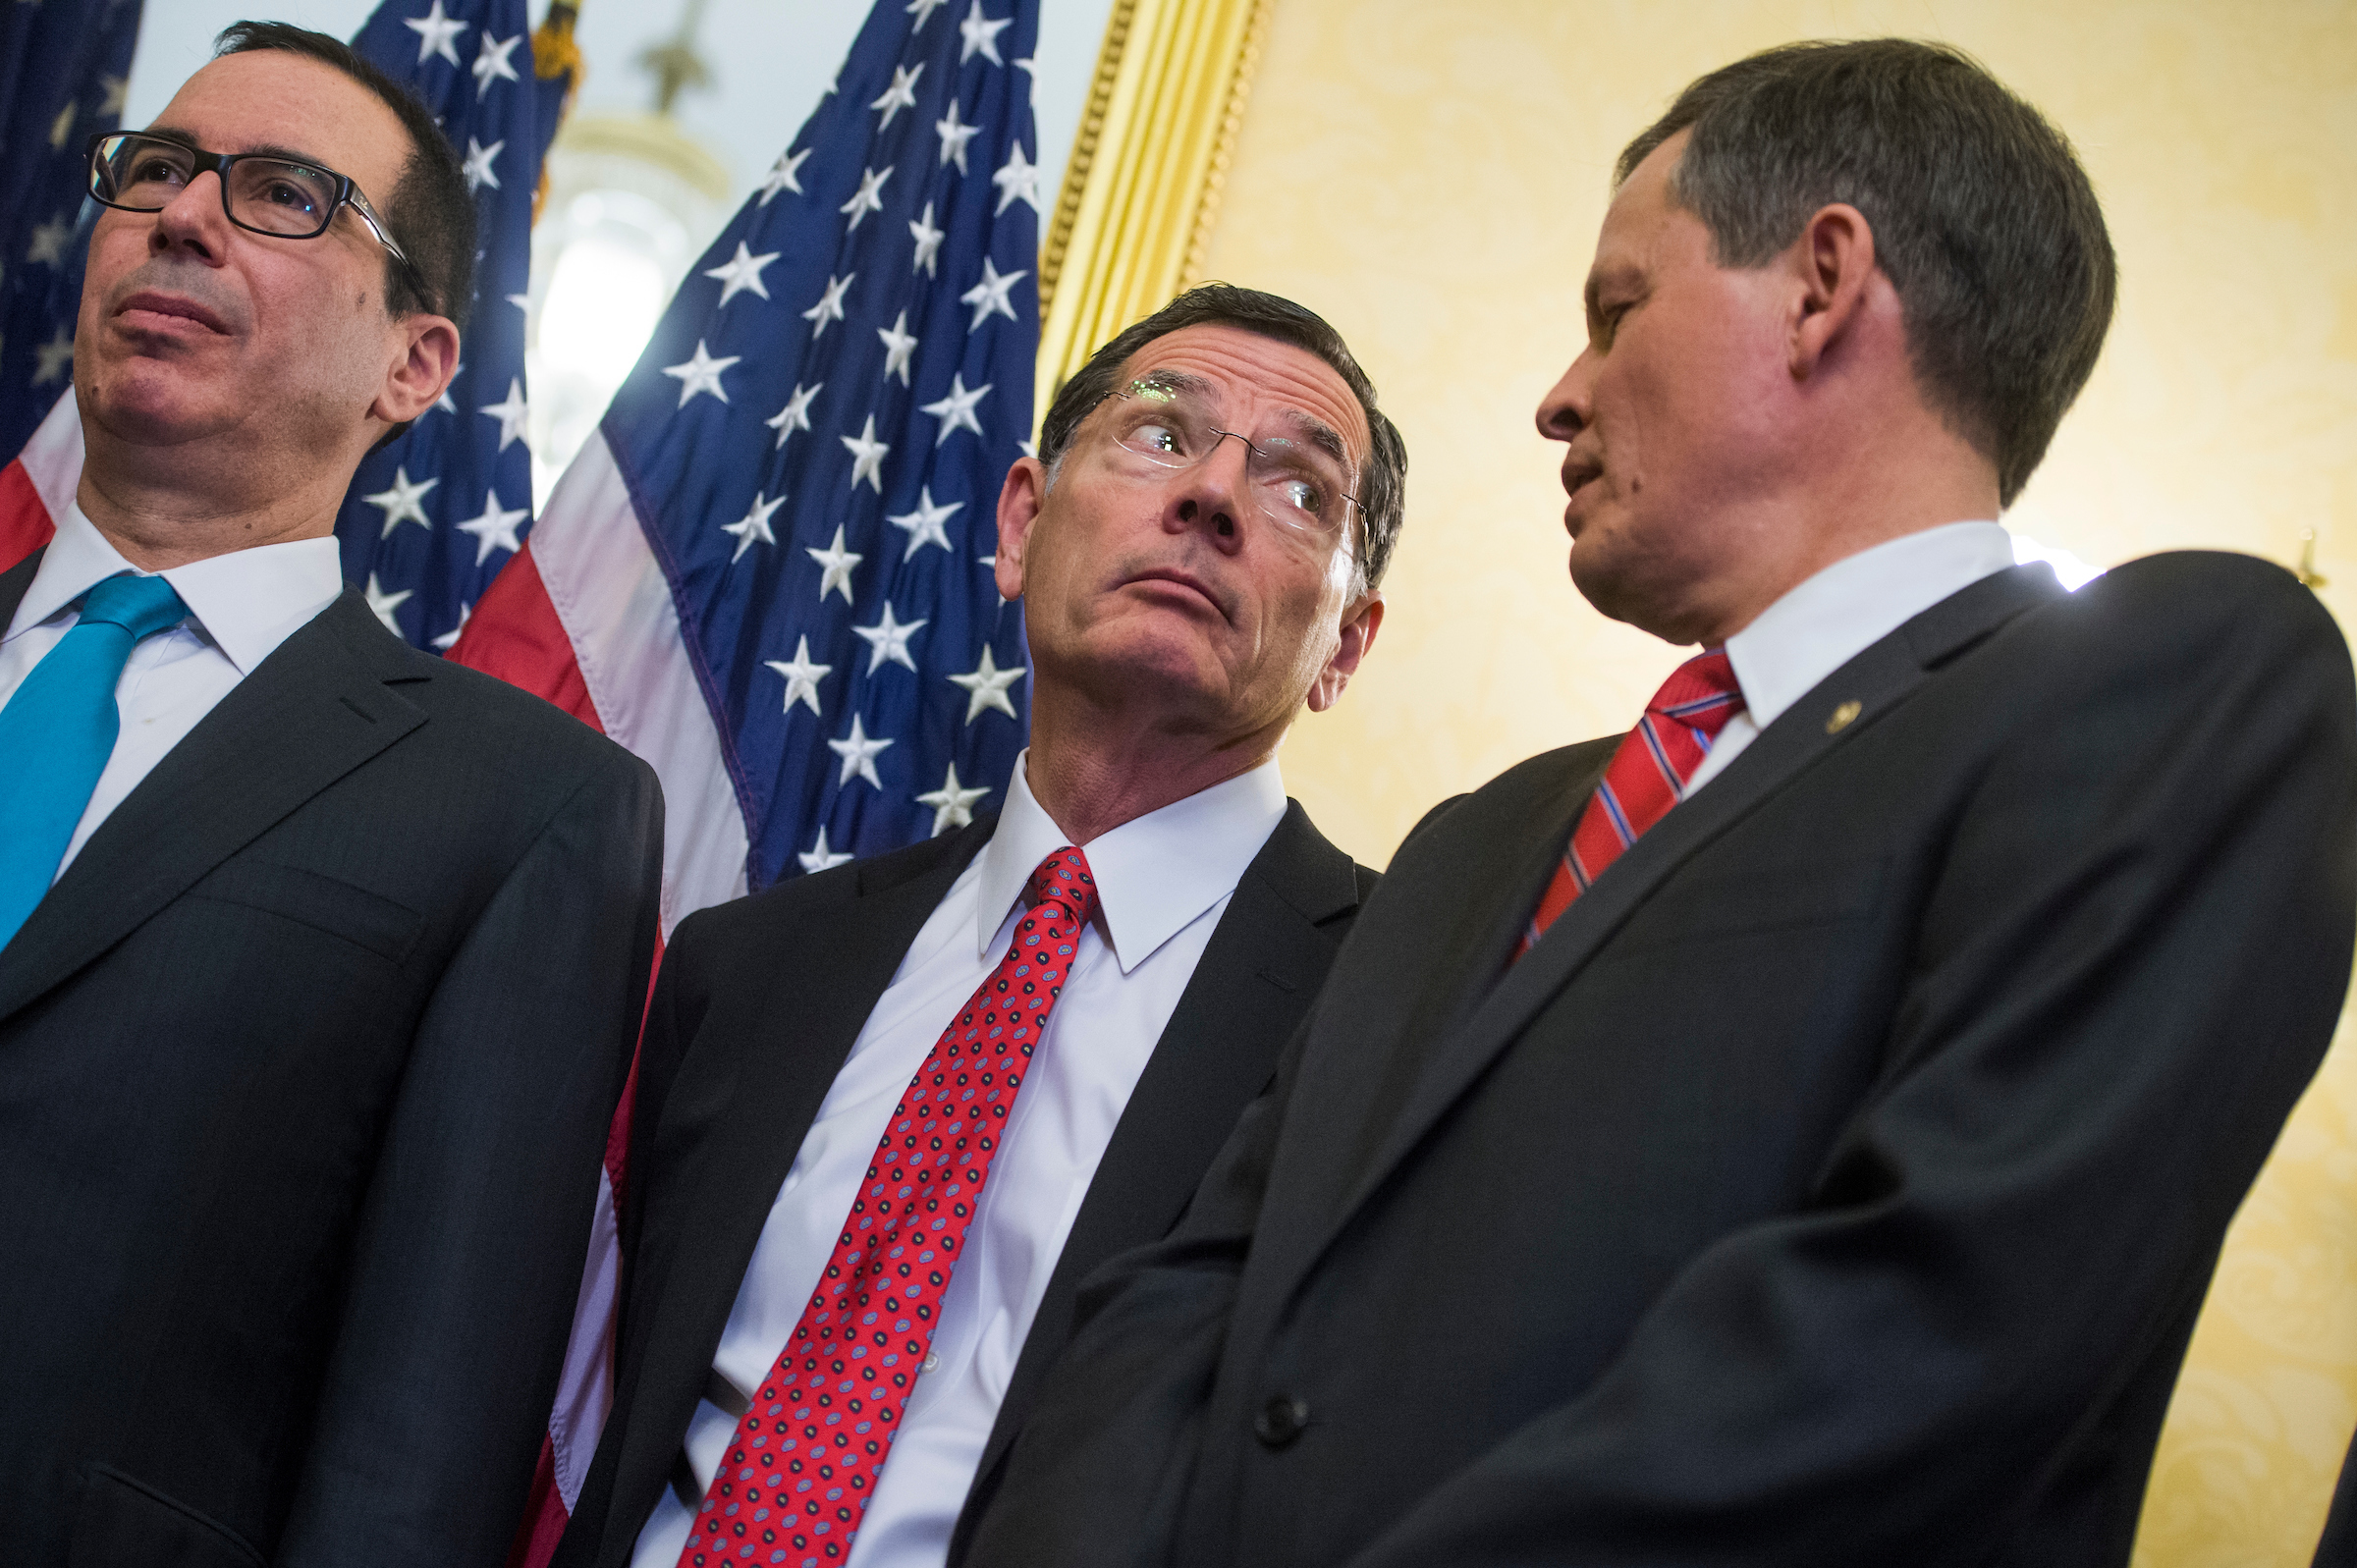 UNITED STATES - NOVEMBER 07: From left, Treasury Secretary Steven Mnuchin, Sens. John Barrasso, R-Wyo., and Steve Daines, R-Mont., attend a news conference in the Capitol where GOP senators said families and small businesses would benefit from tax reform on November 7, 2017. Administration officials and tax experts also voiced support for reform. (Photo By Tom Williams/CQ Roll Call)